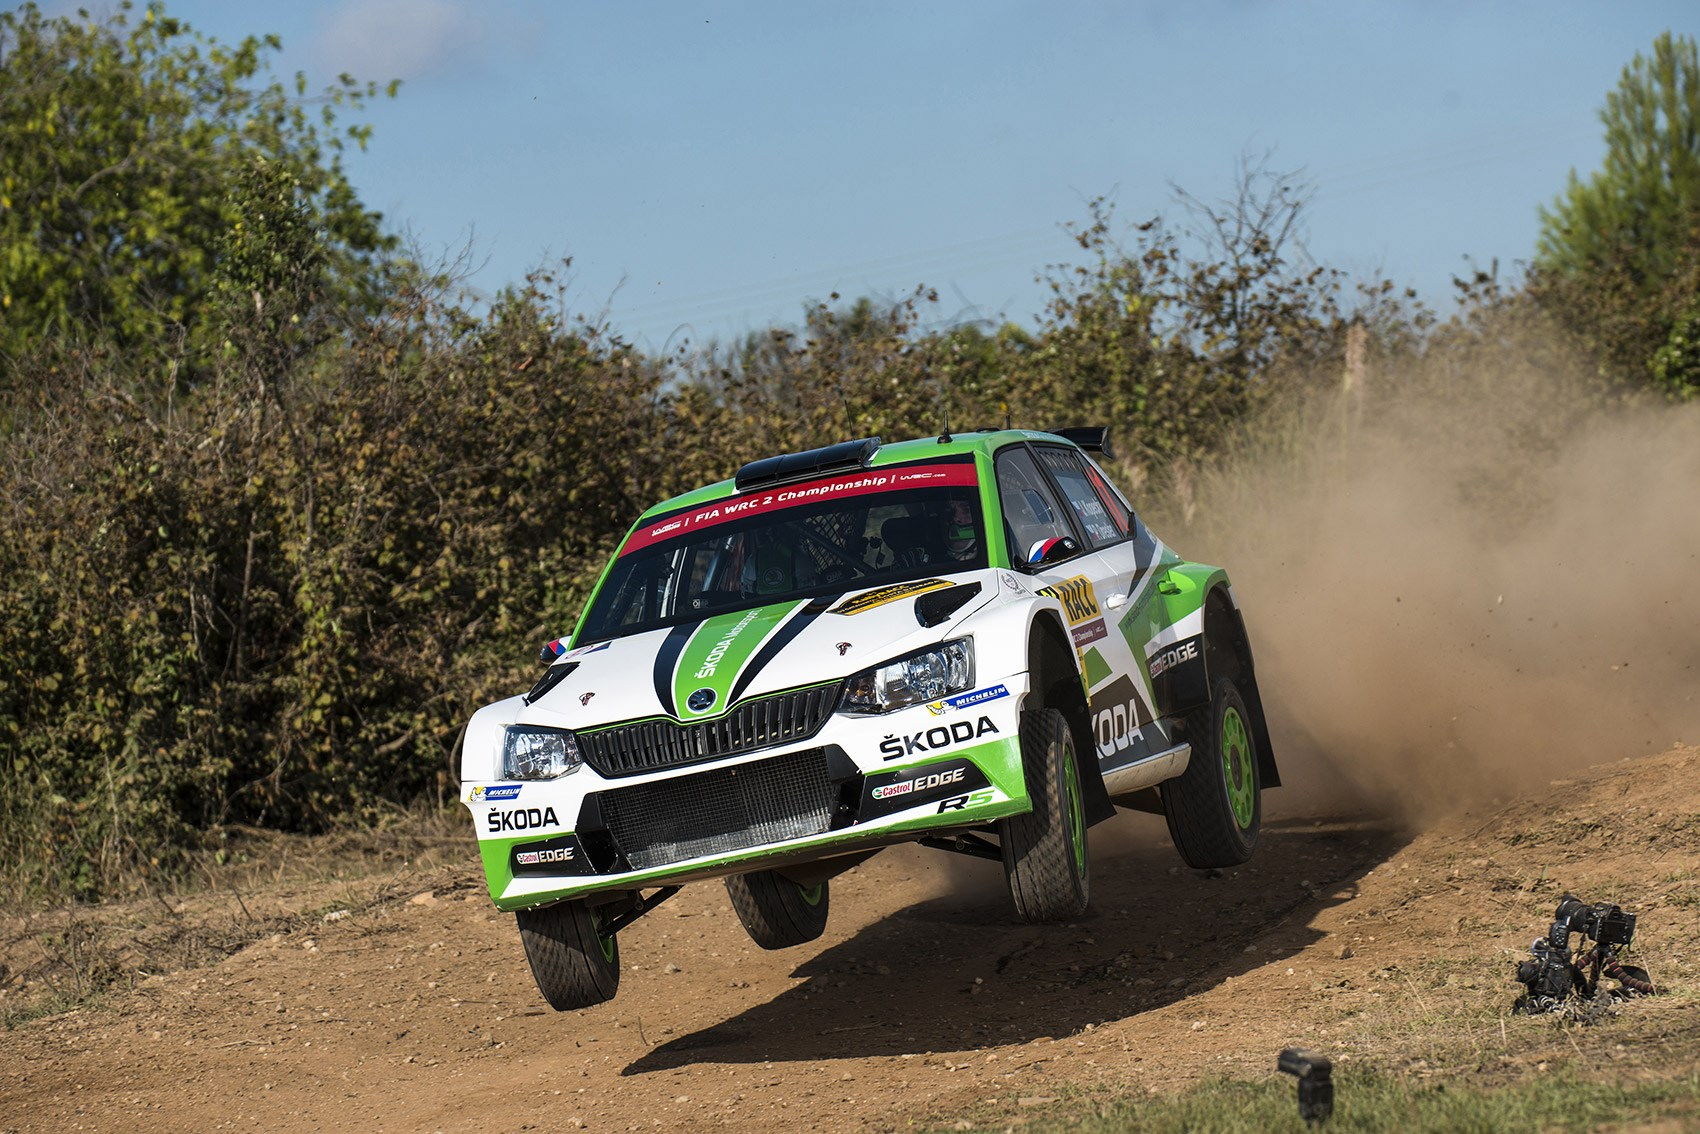 Skoda Fabia R5 rally car ride review by CAR Magazine